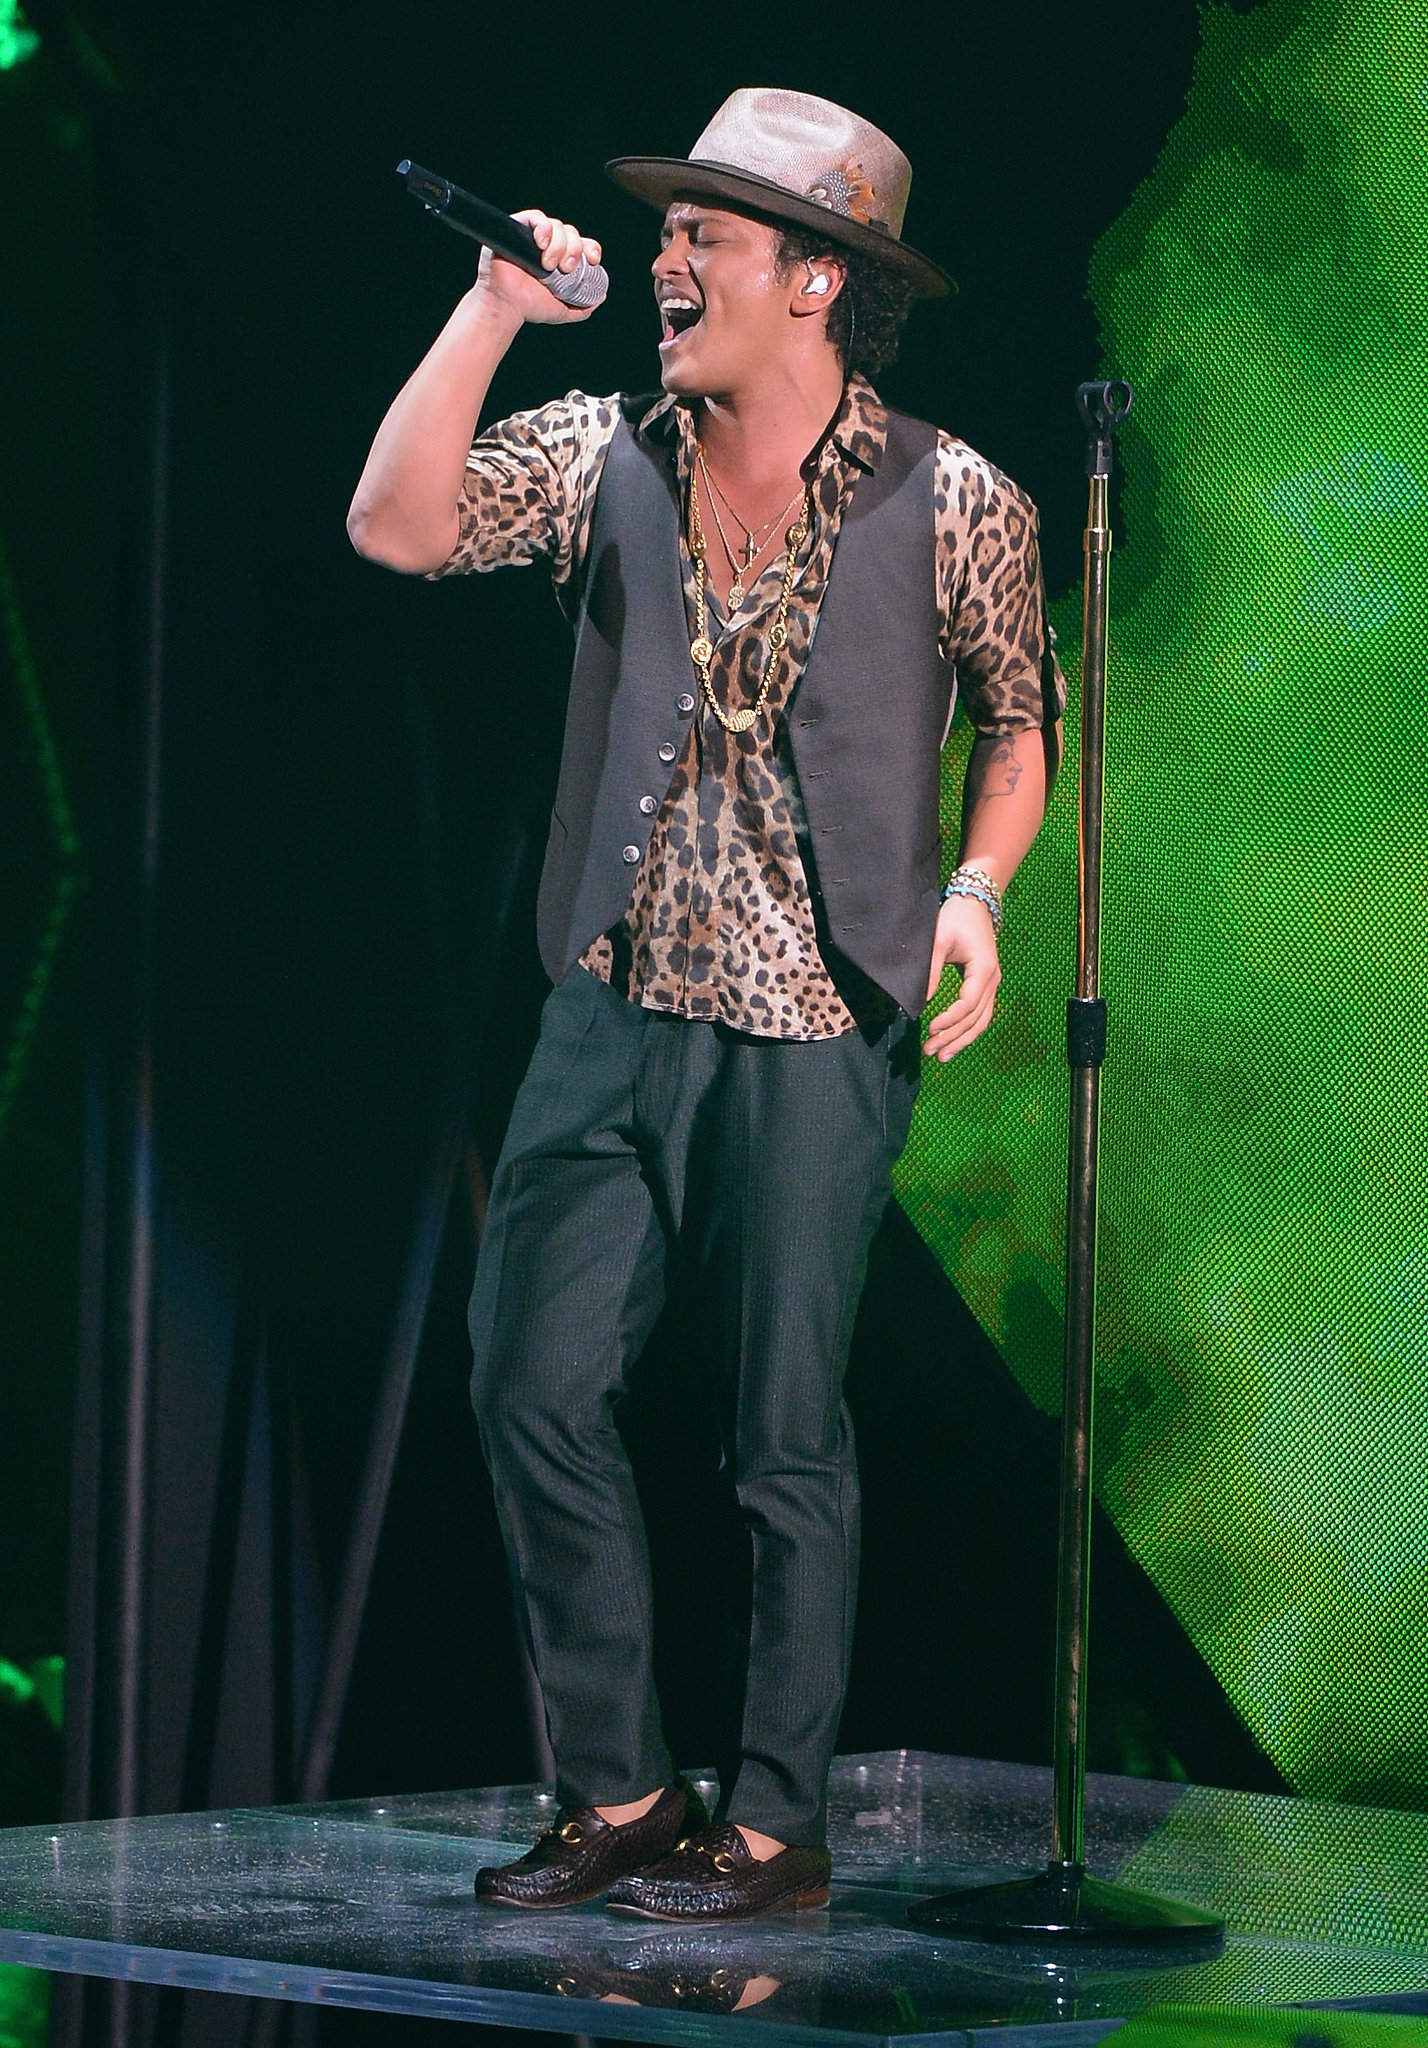 Bruno Mars performed at the VMAs.